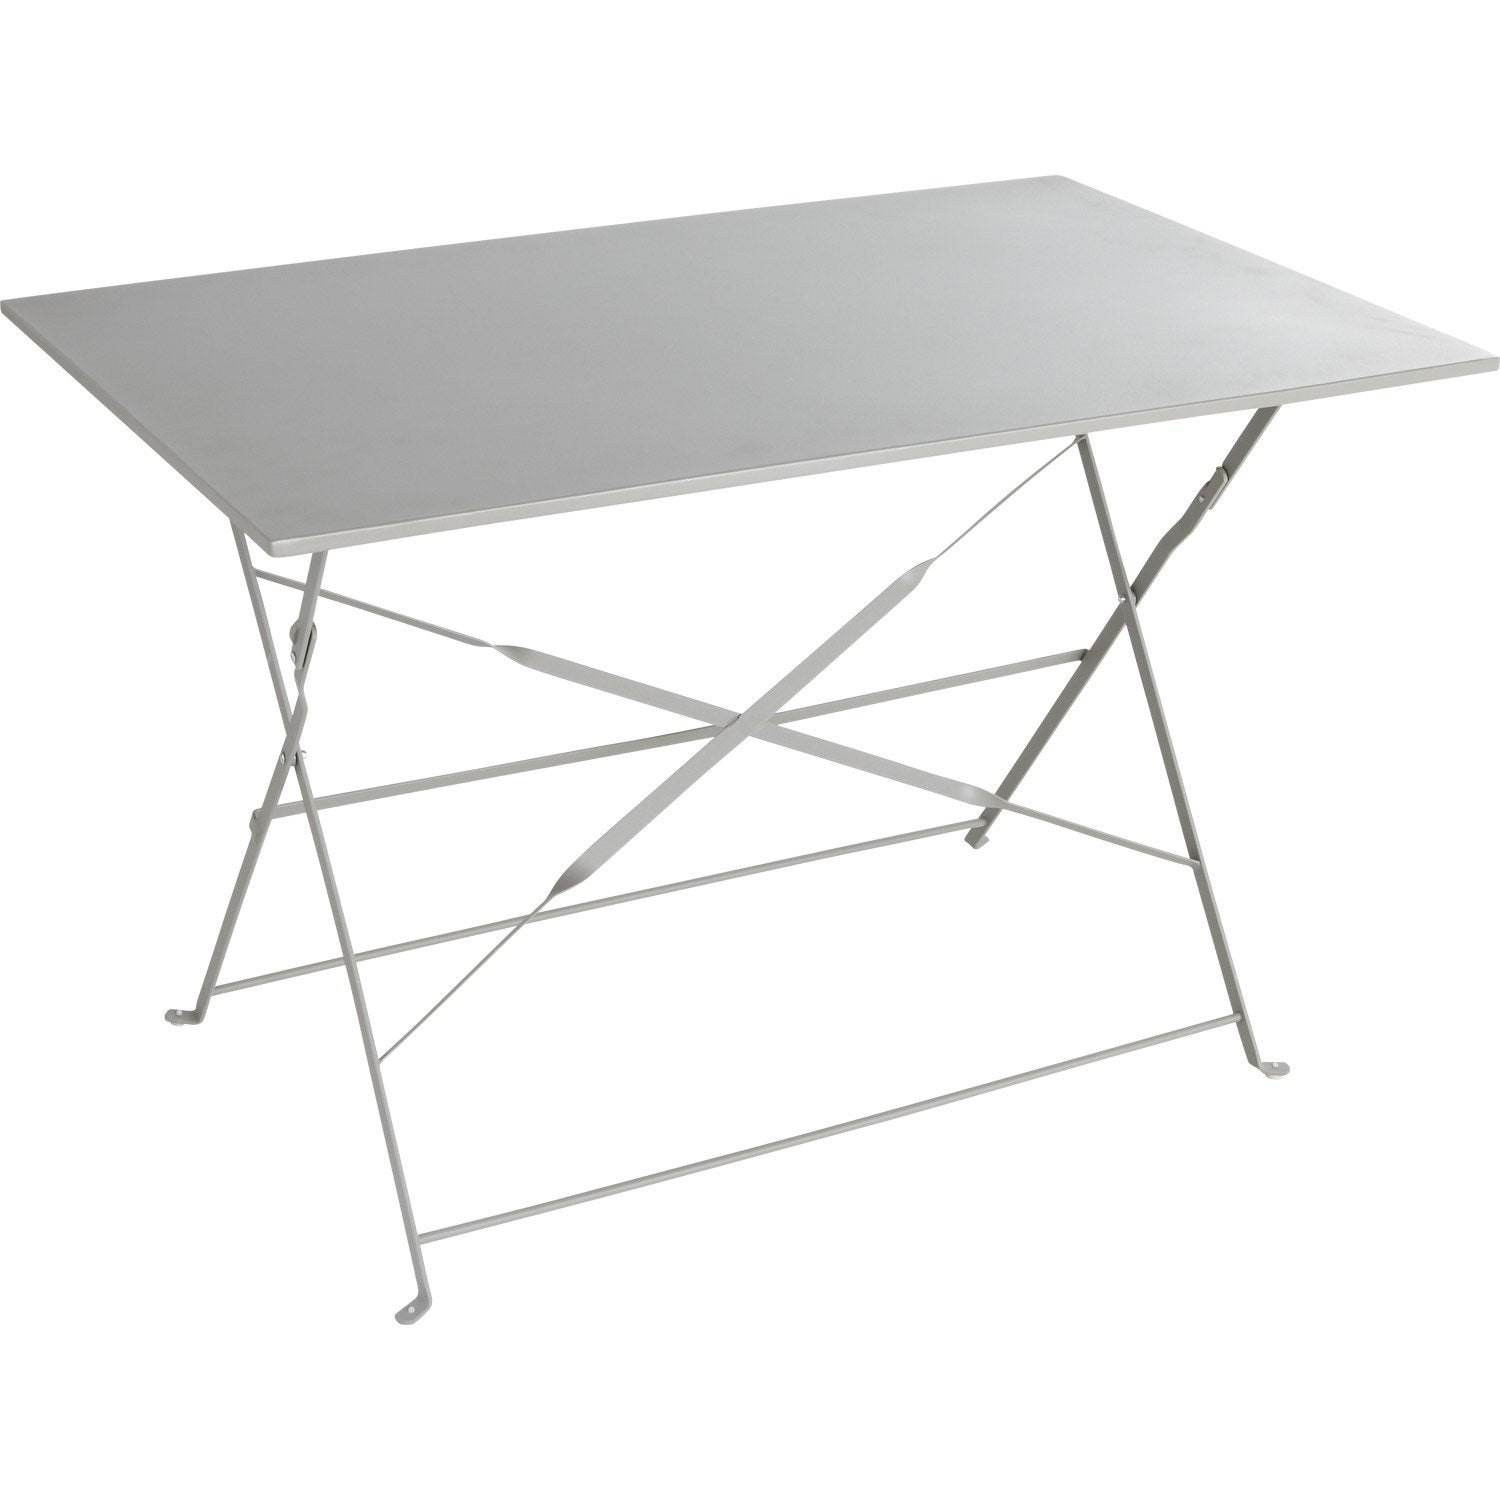 Table de jardin naterial flore rectangulaire gris 4 personnes leroy merlin - Leroy merlin table pliante ...